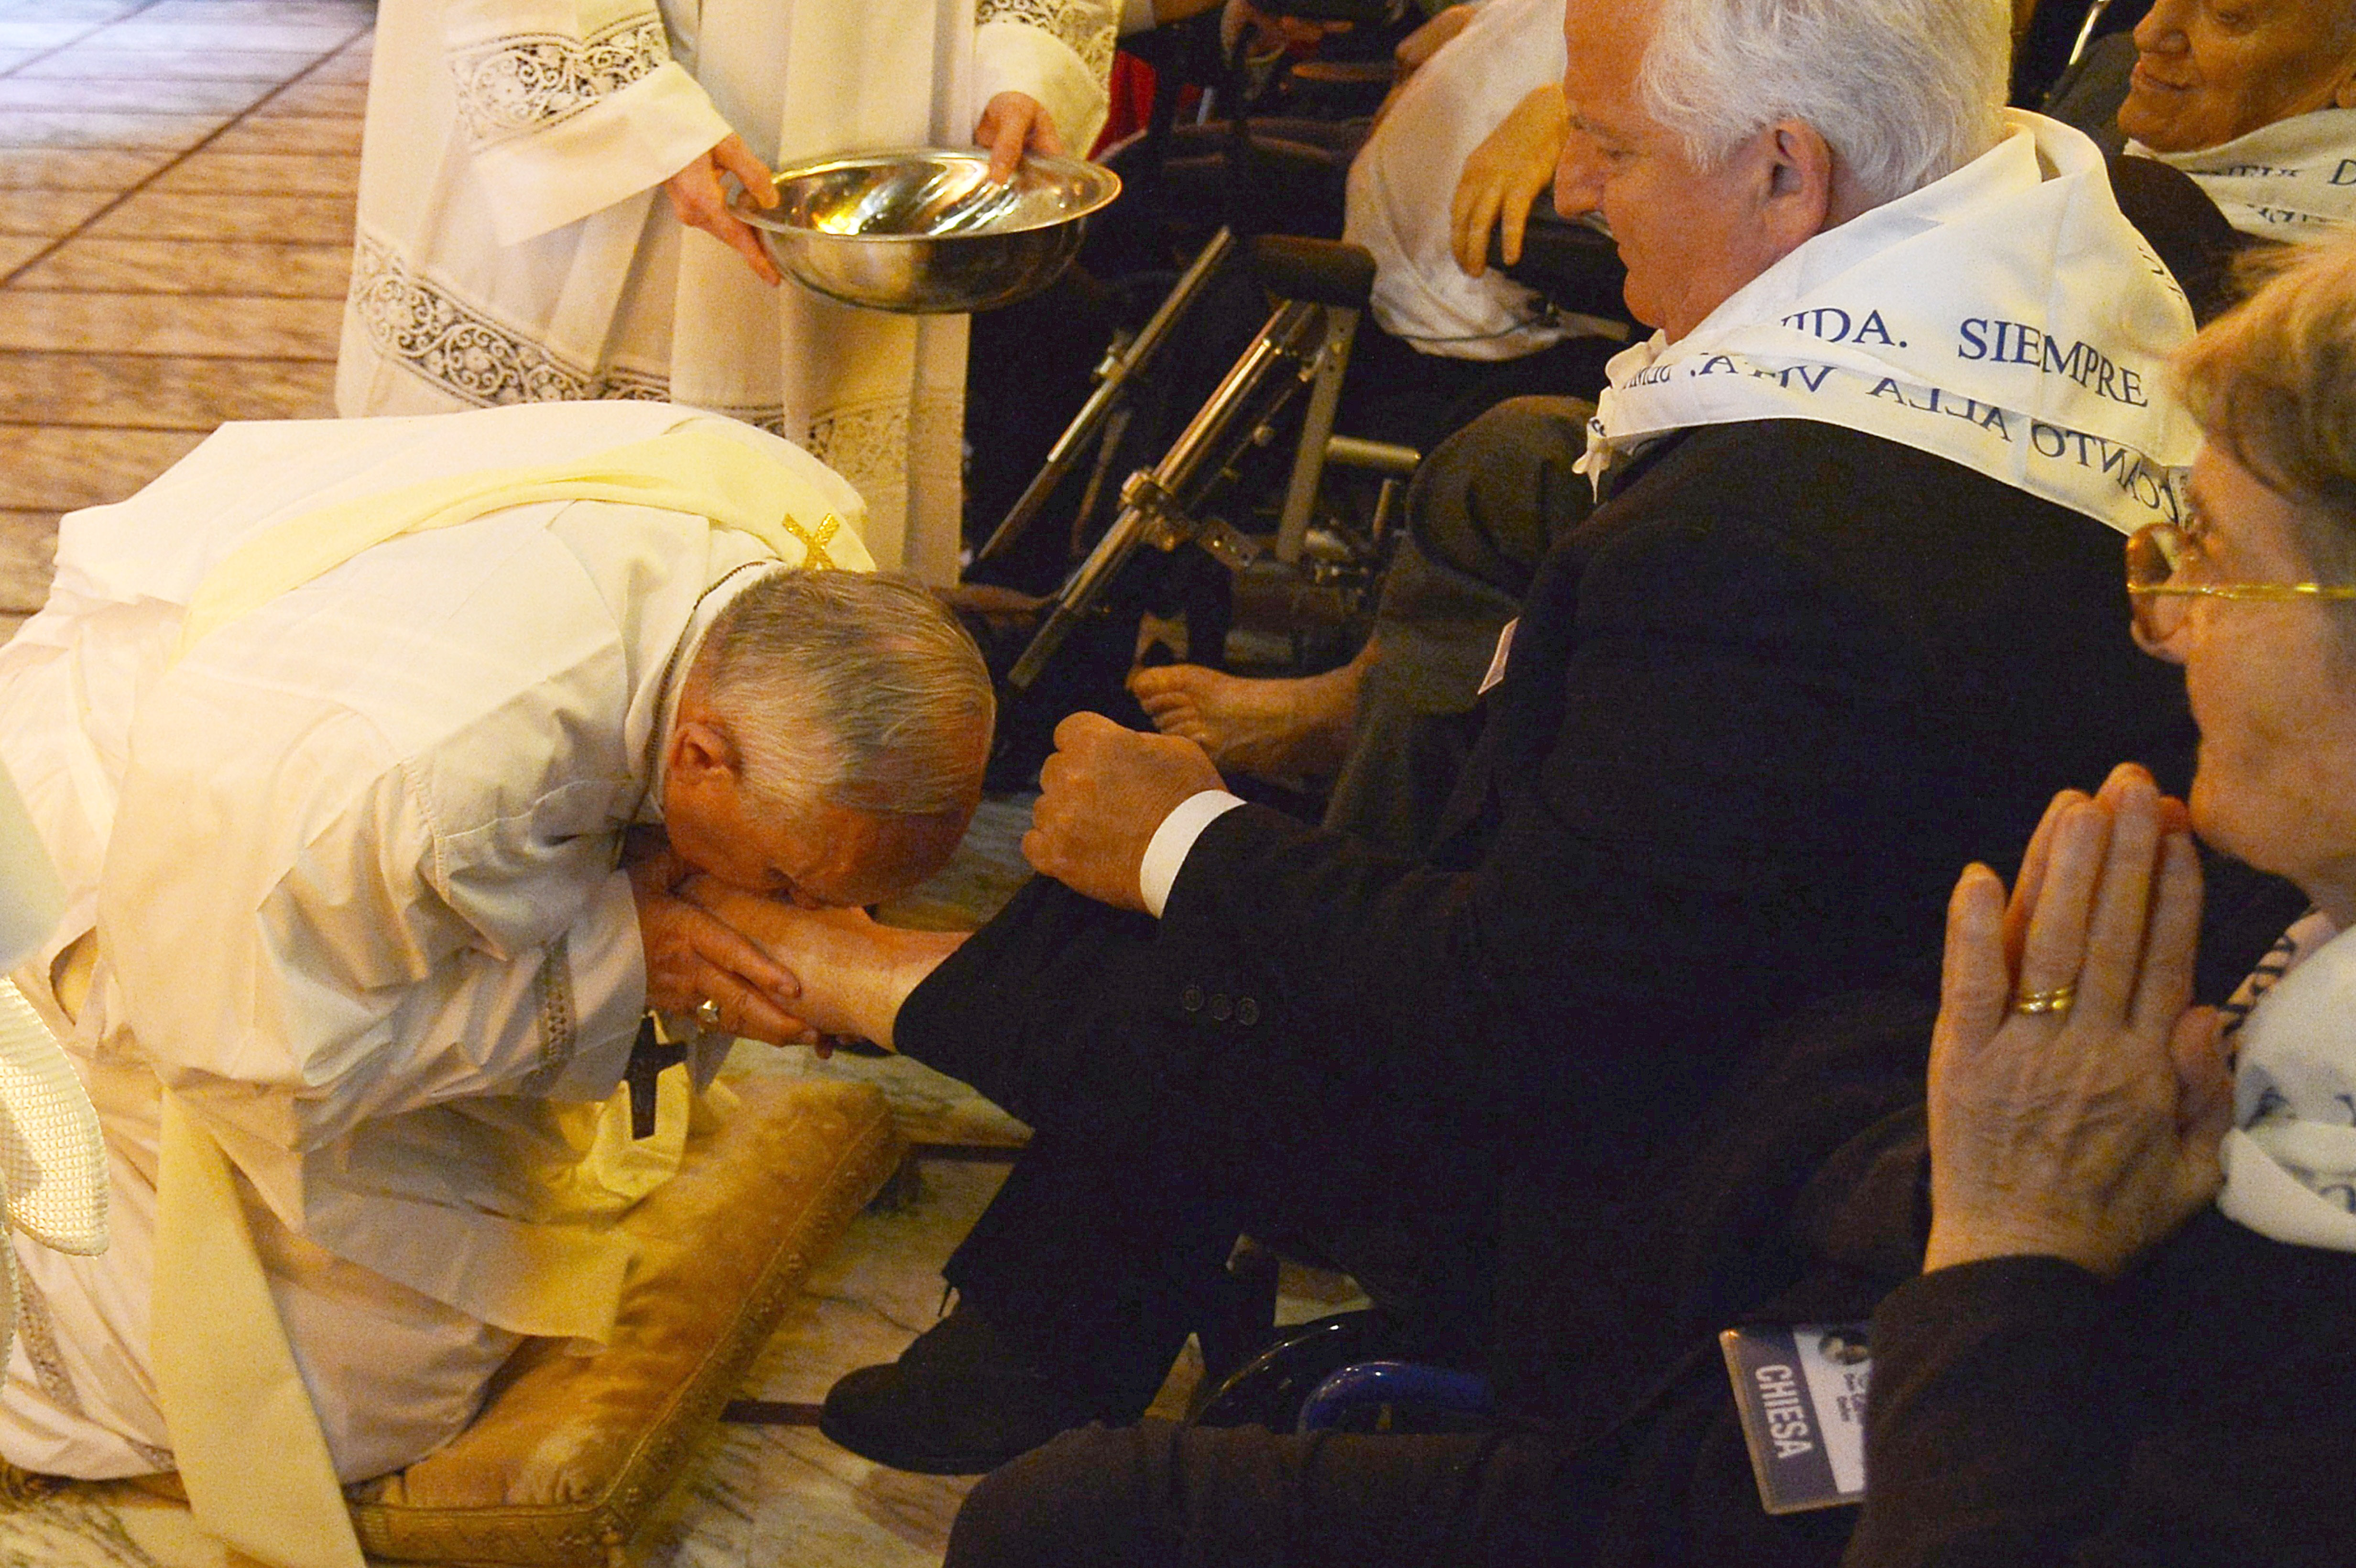 castelnuovo di porto single muslim girls Pope francis washes and kisses feet of muslim  he performed the christian tradition at a shelter in castelnuovo di porto,  the feet of eight men and four women.